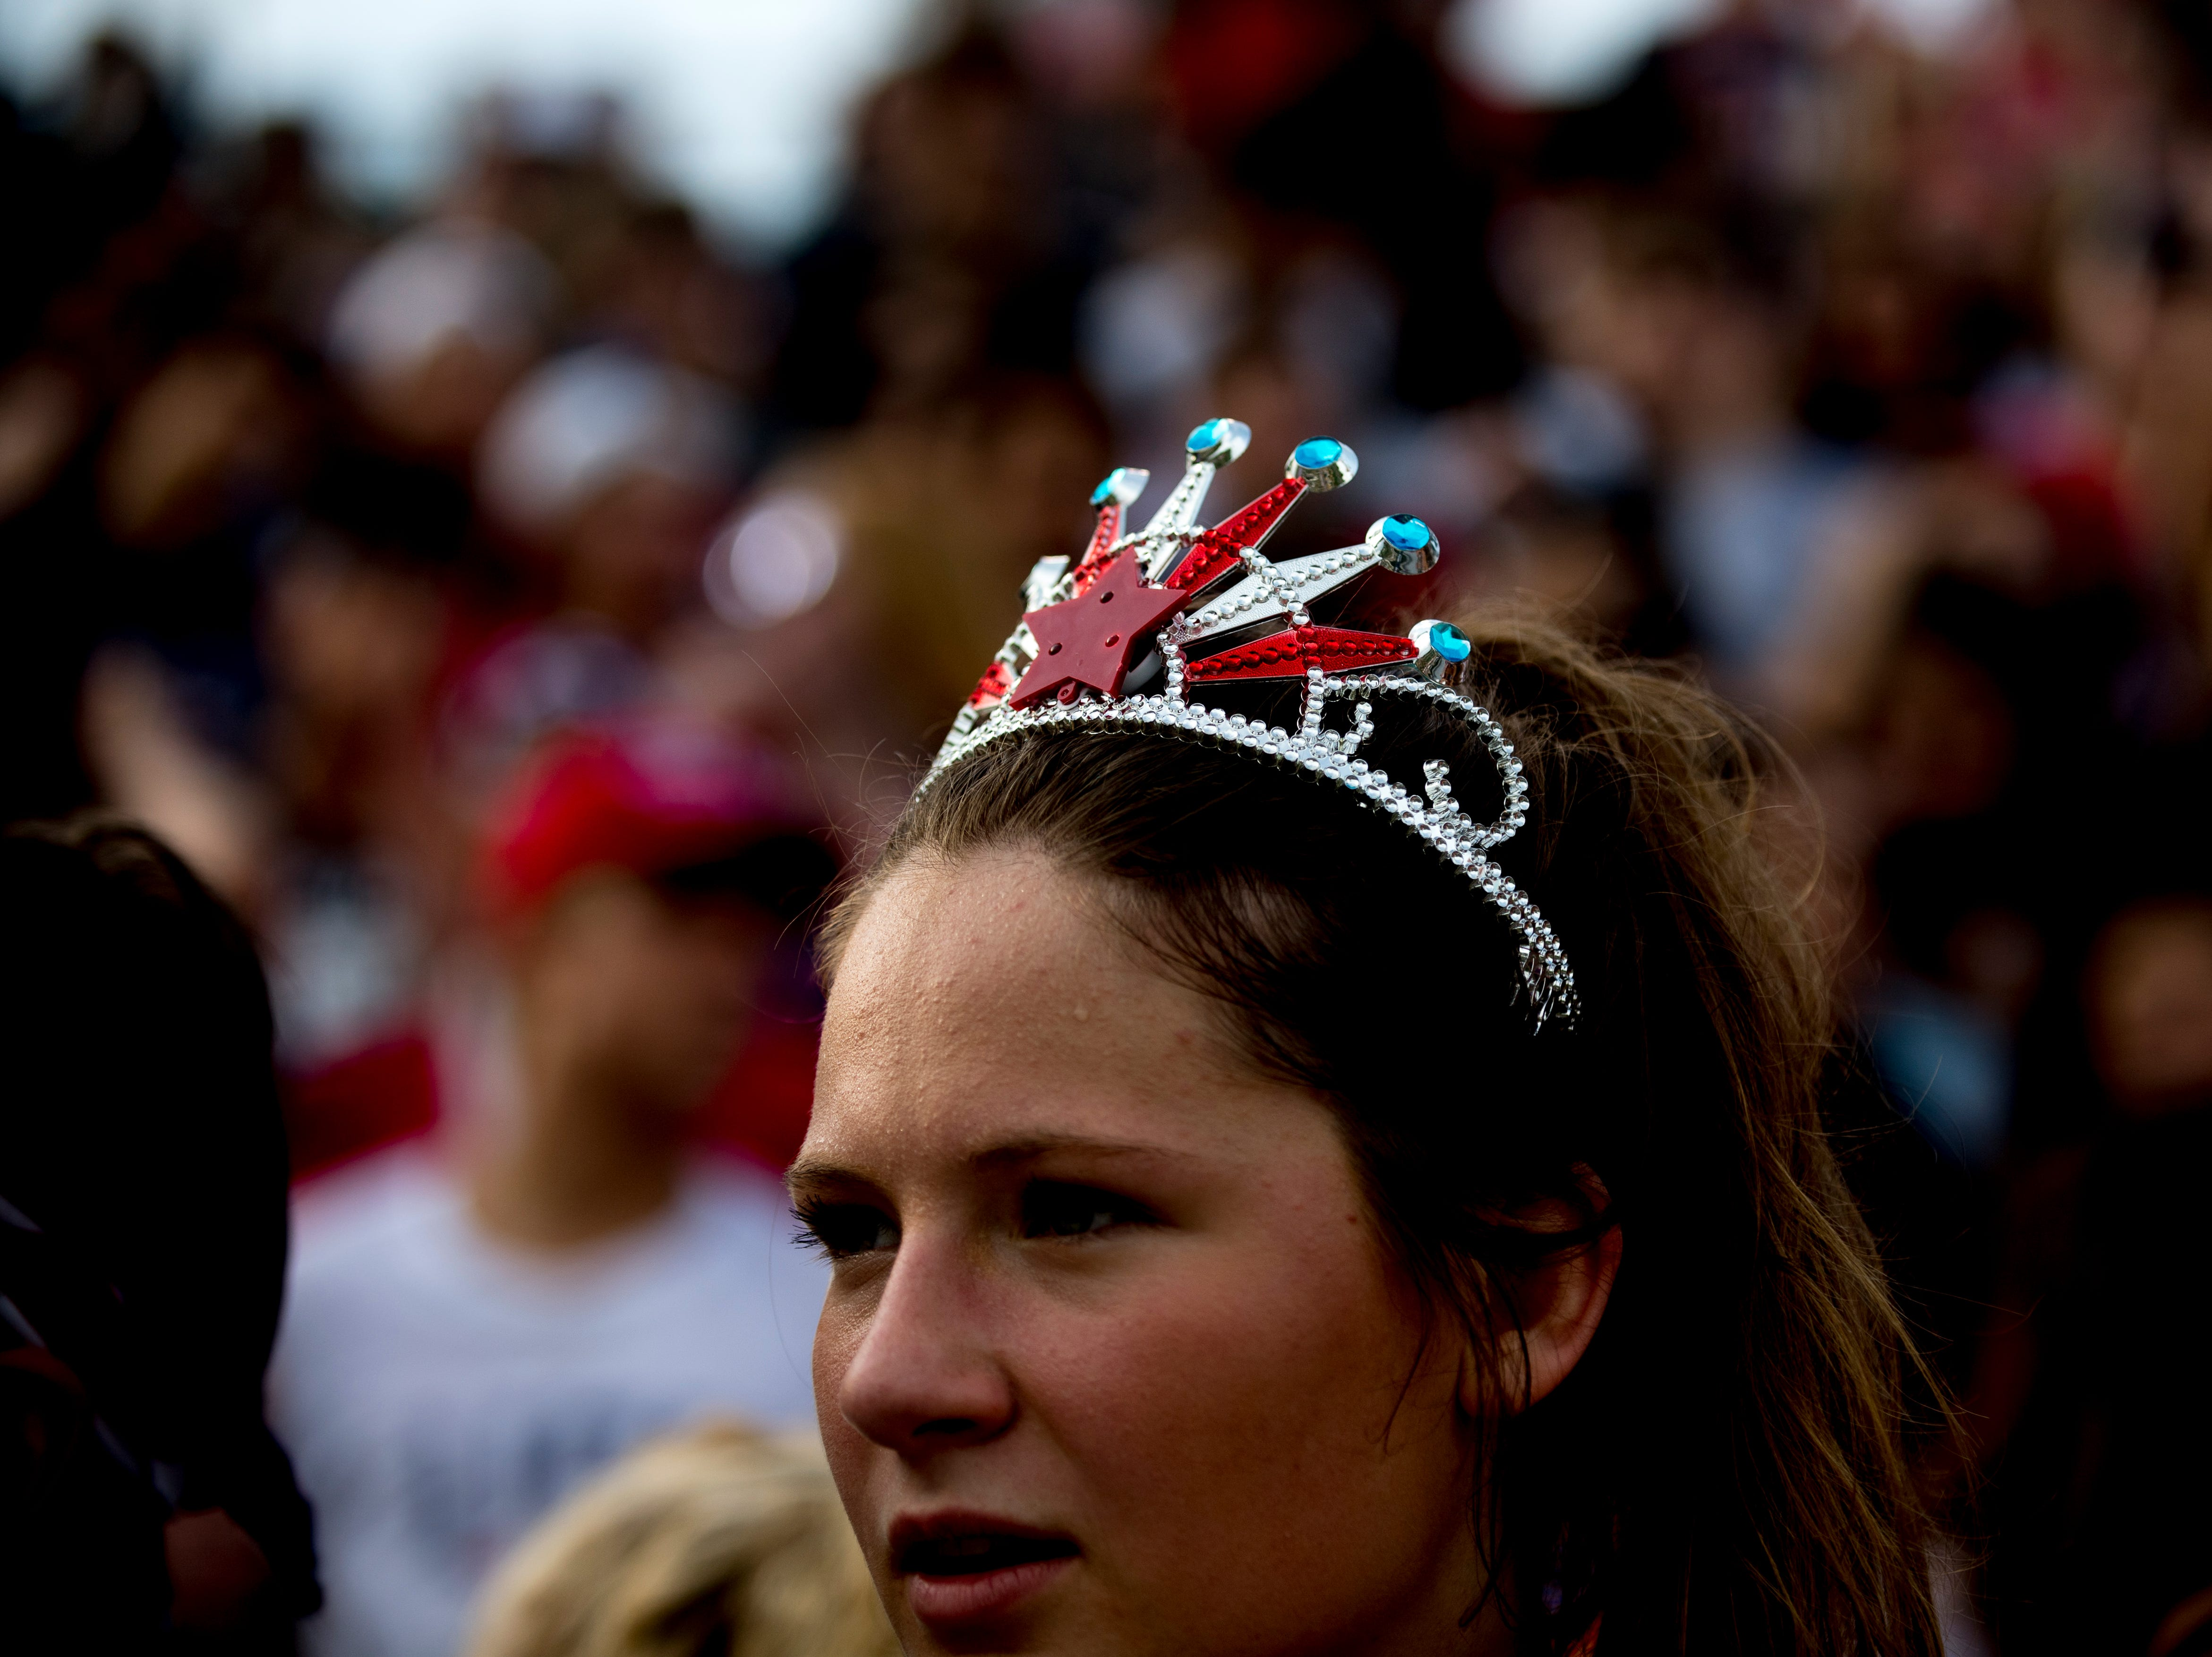 A fan in the Catholic student sections wears a tiara during a football game between Maryville and Catholic at Catholic High School in Knoxville, Tennessee on Friday, August 17, 2018.